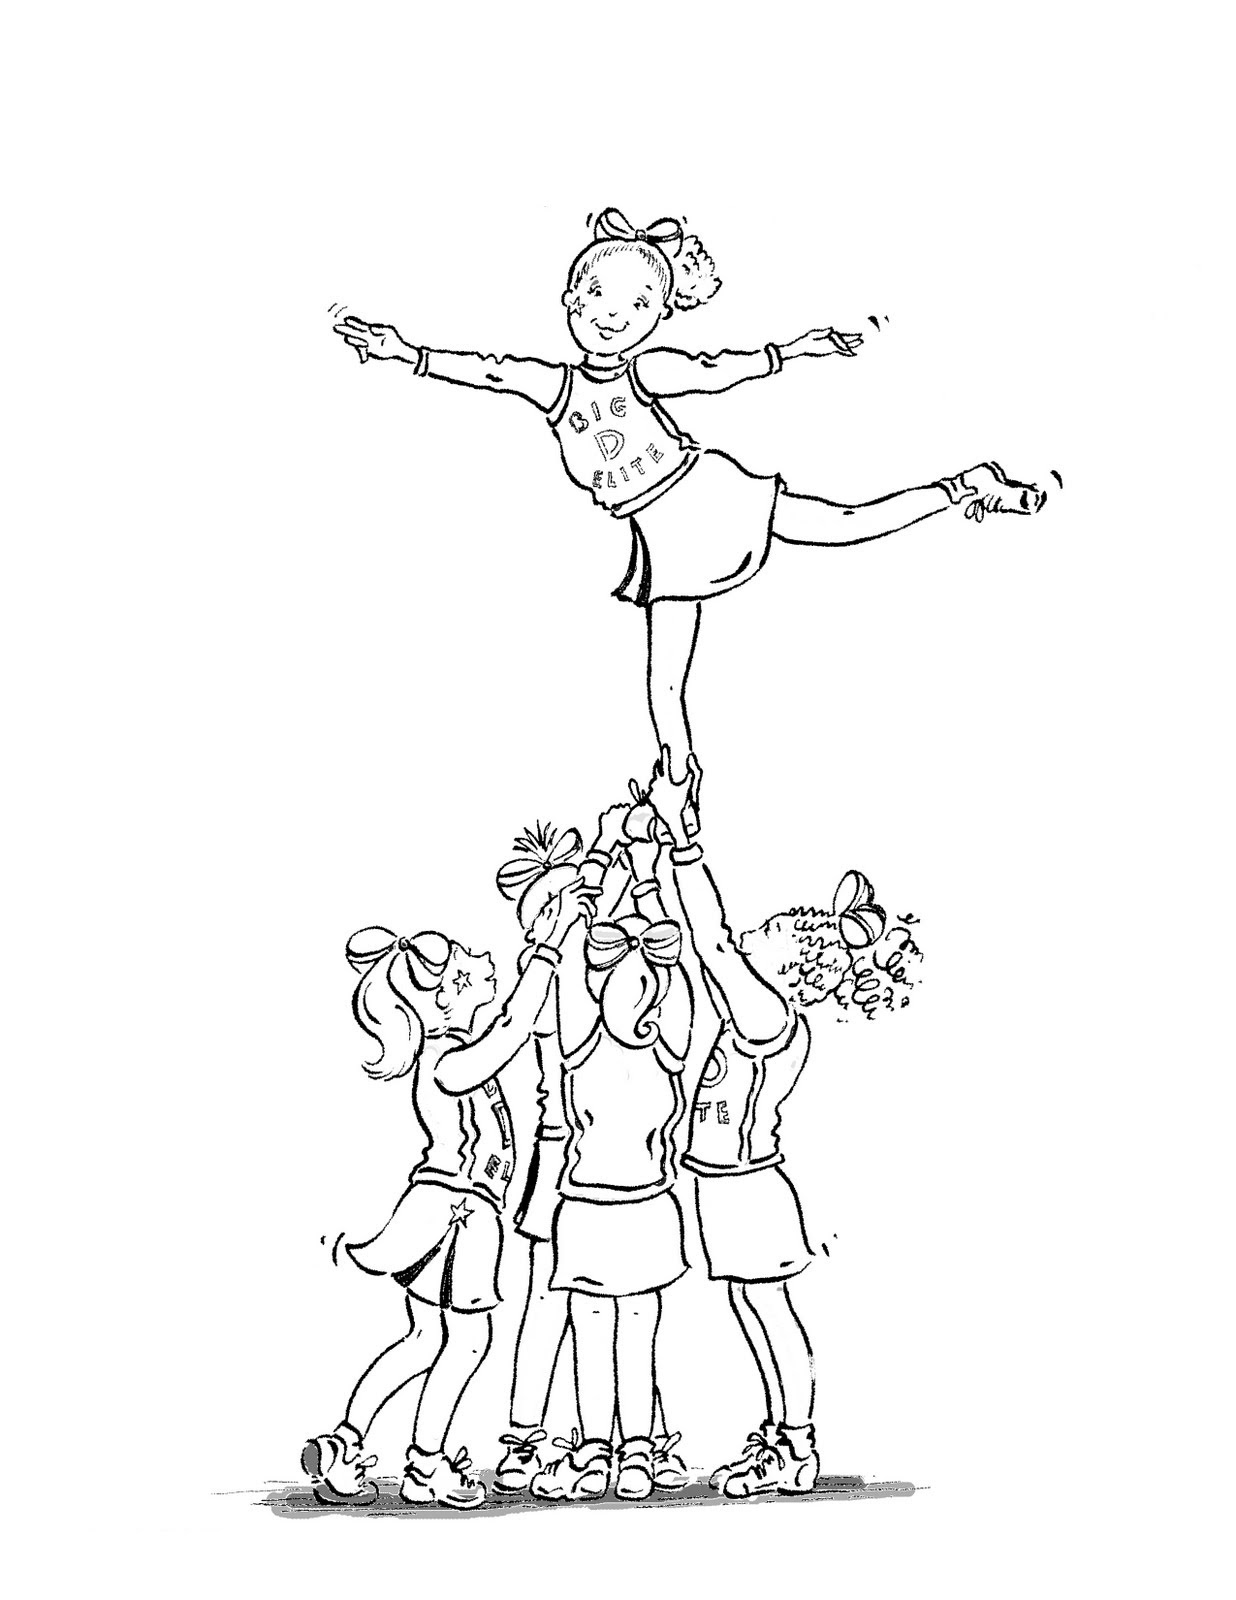 Cheerleading Coloring Pages For Kids